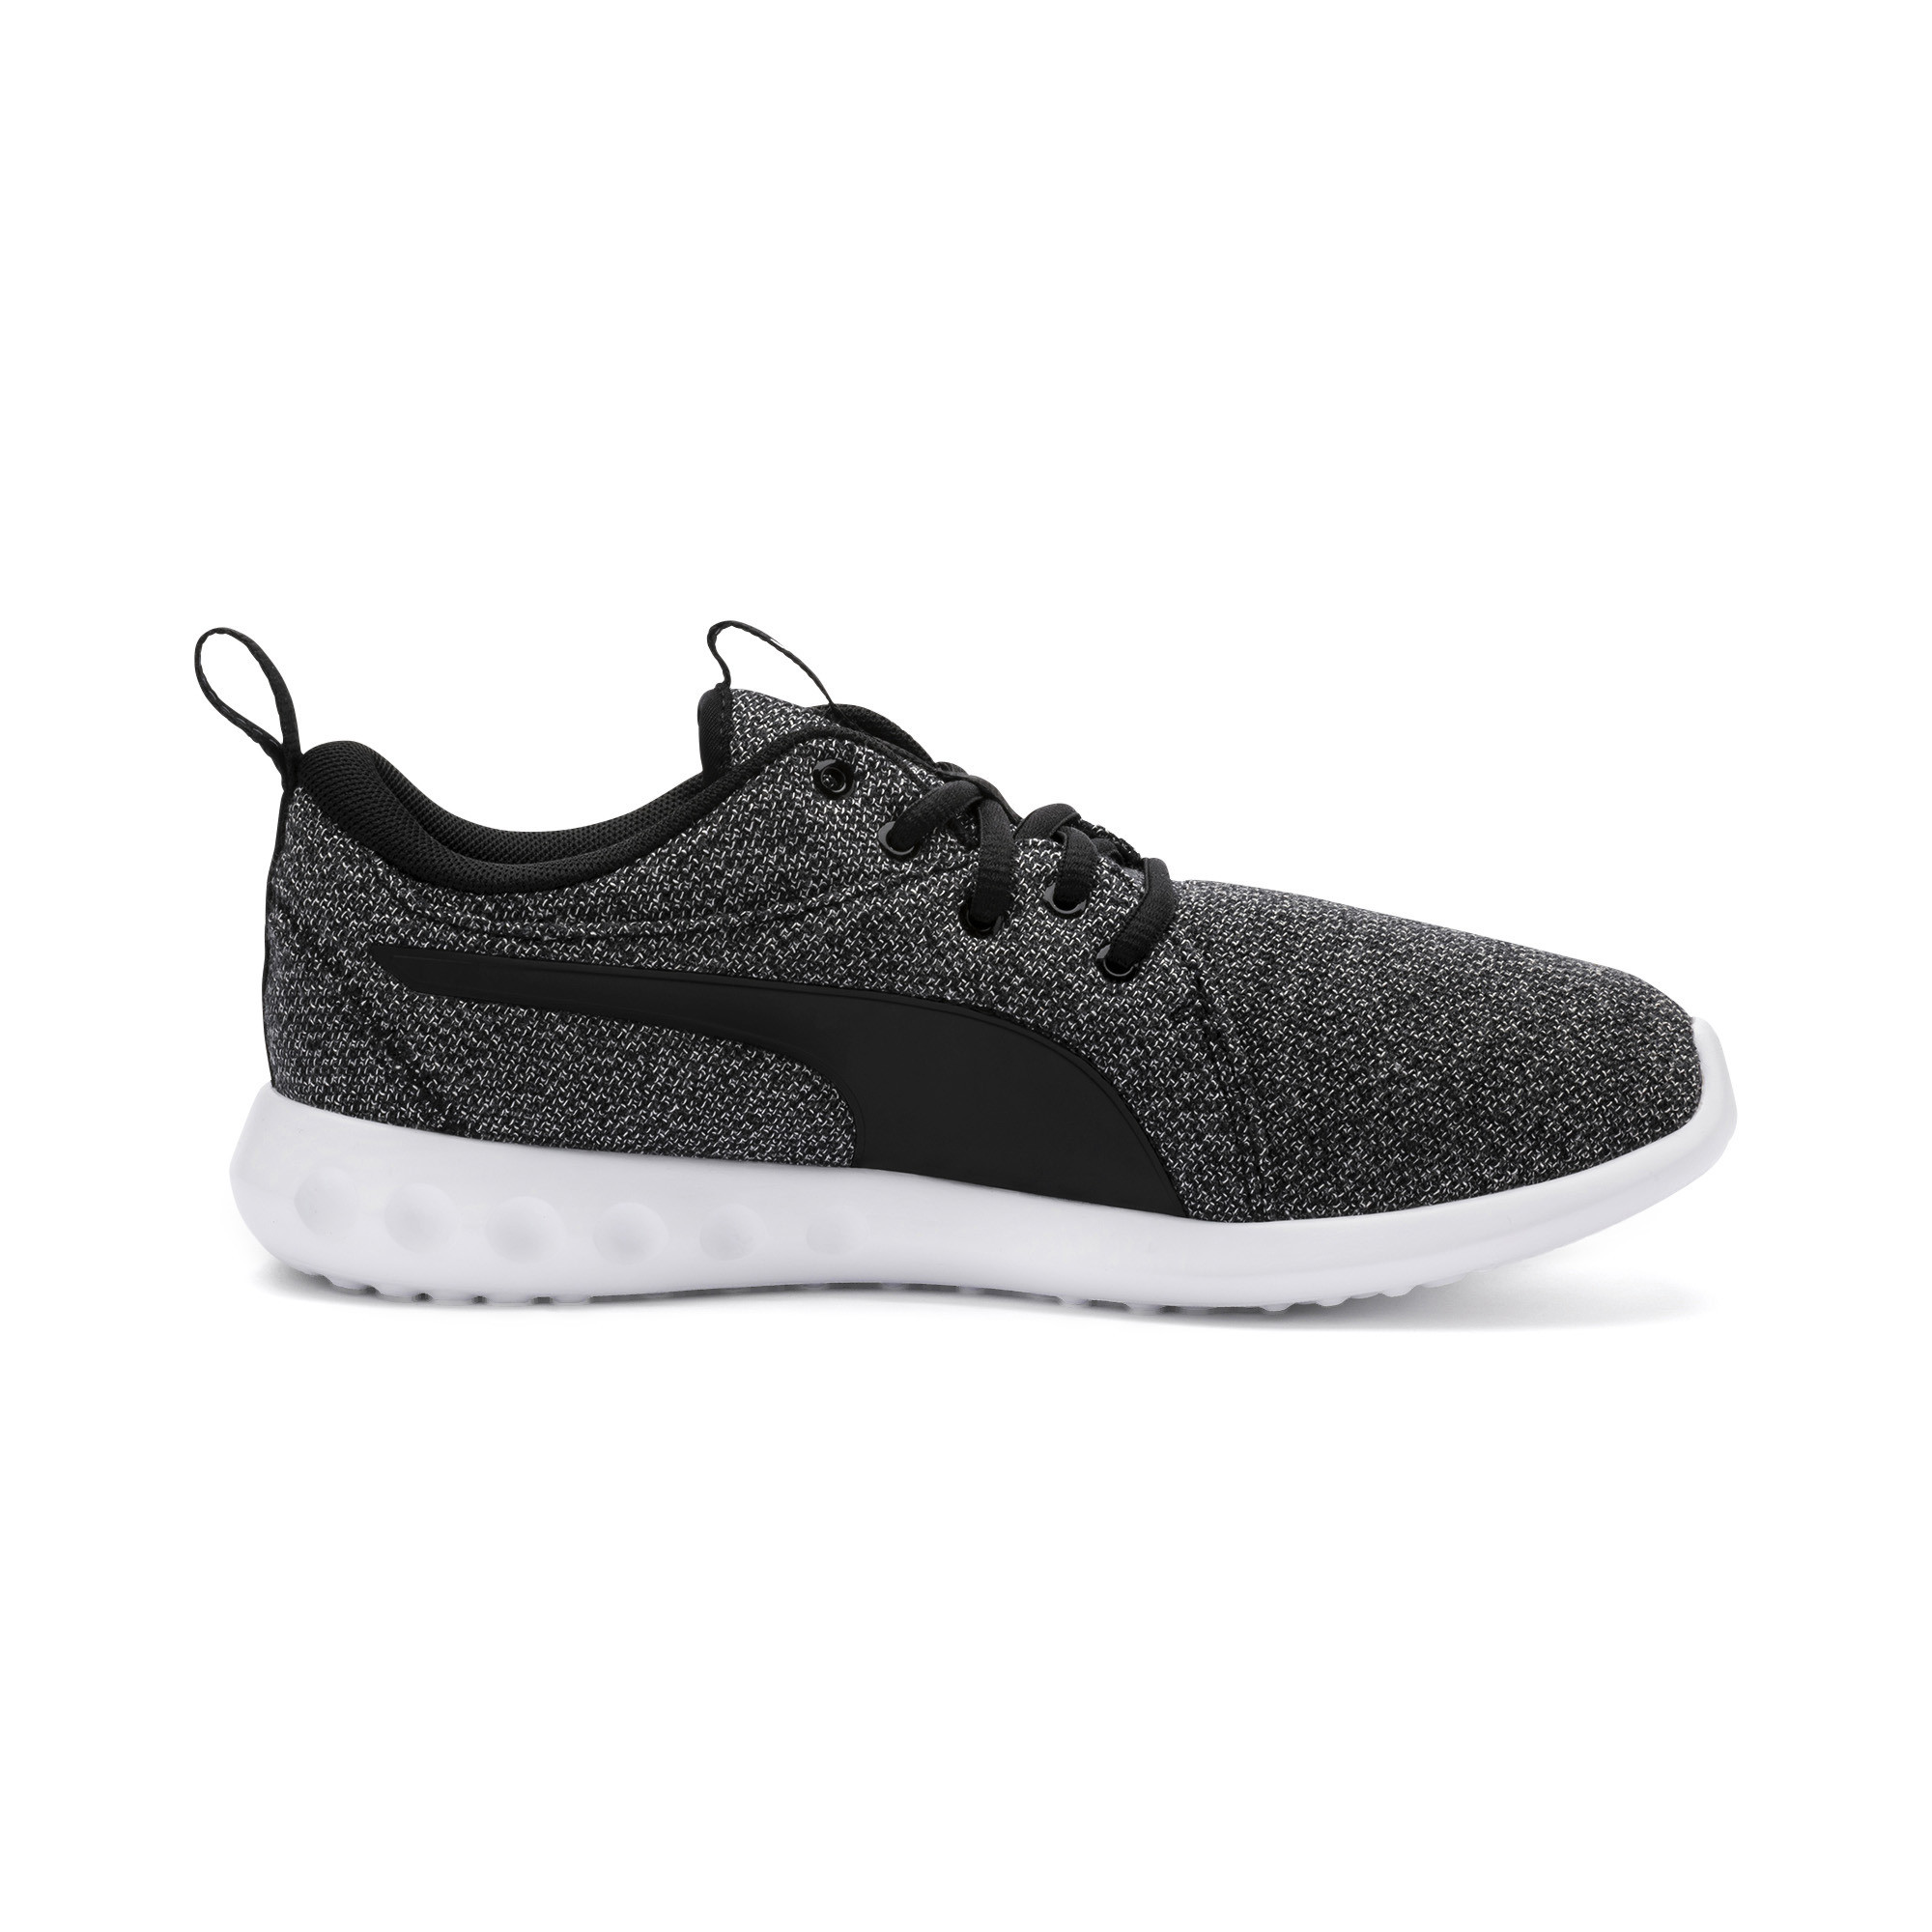 PUMA-Women-039-s-Carson-2-Knit-Running-Shoes thumbnail 25